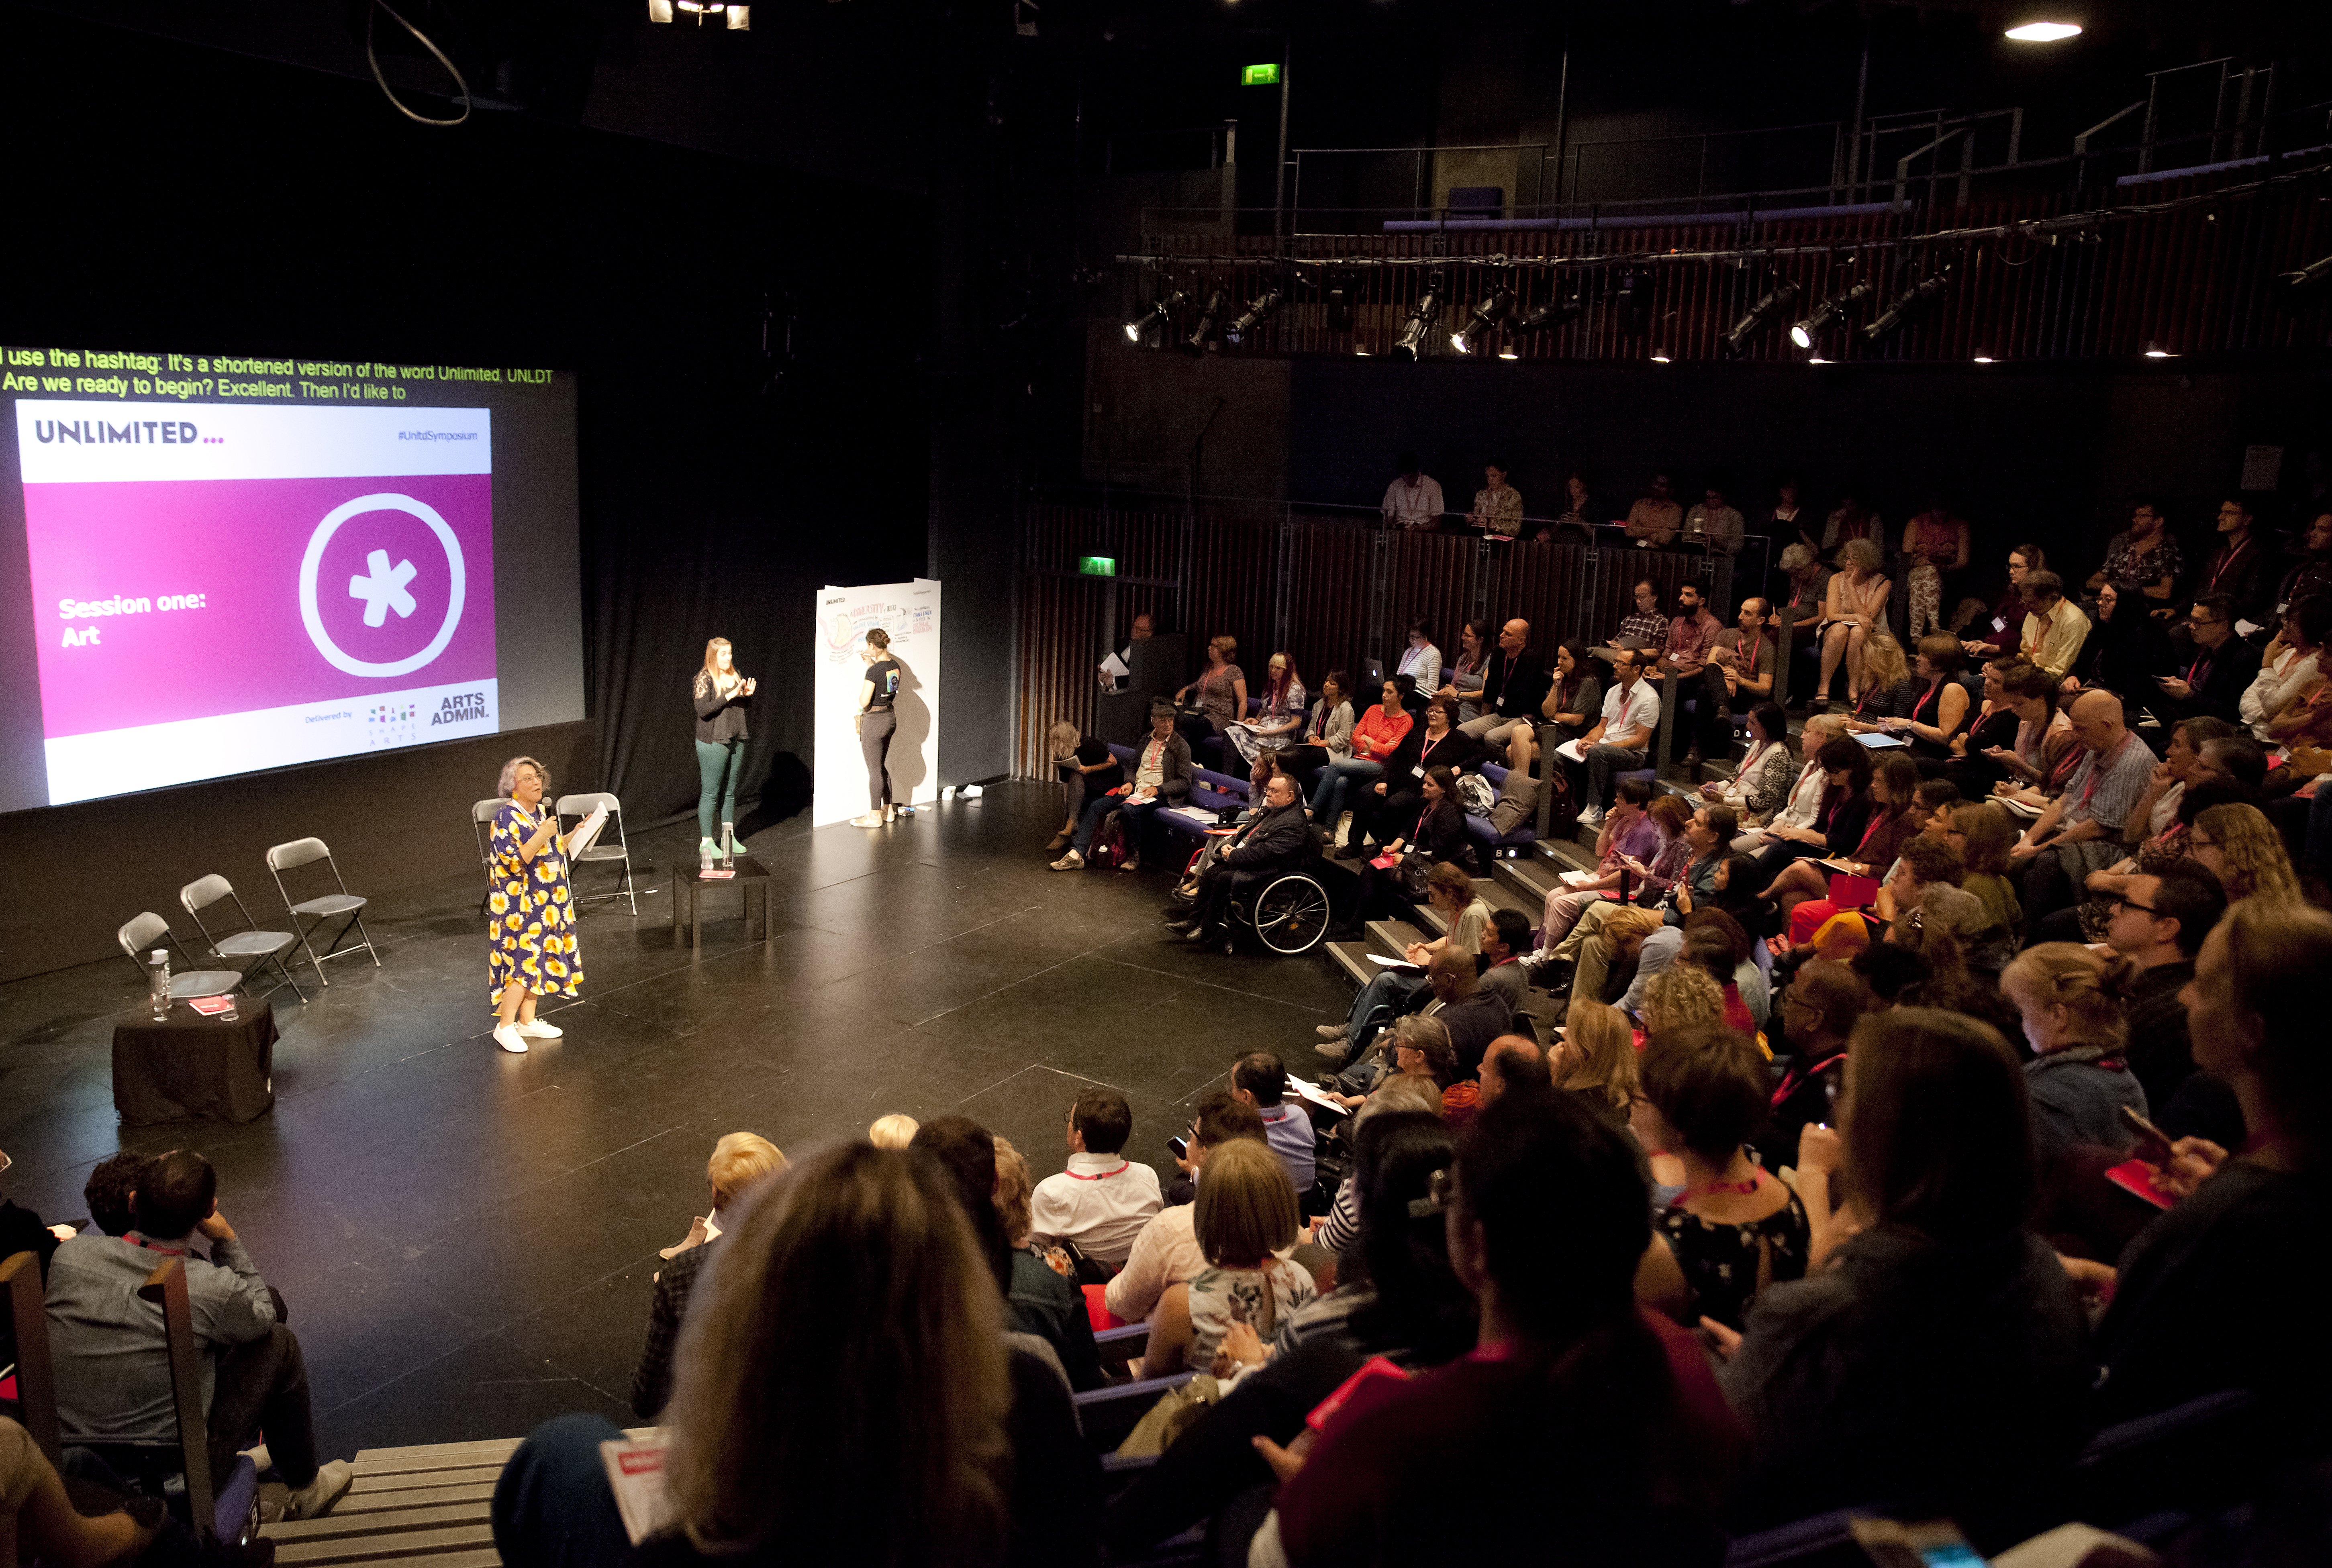 Wide shot of Jo standing in front of a powerpoint presentation, addressing an audience in a dark theatre space. She is a caucasian woman with grey hair and is wearing a bright flowery dress.